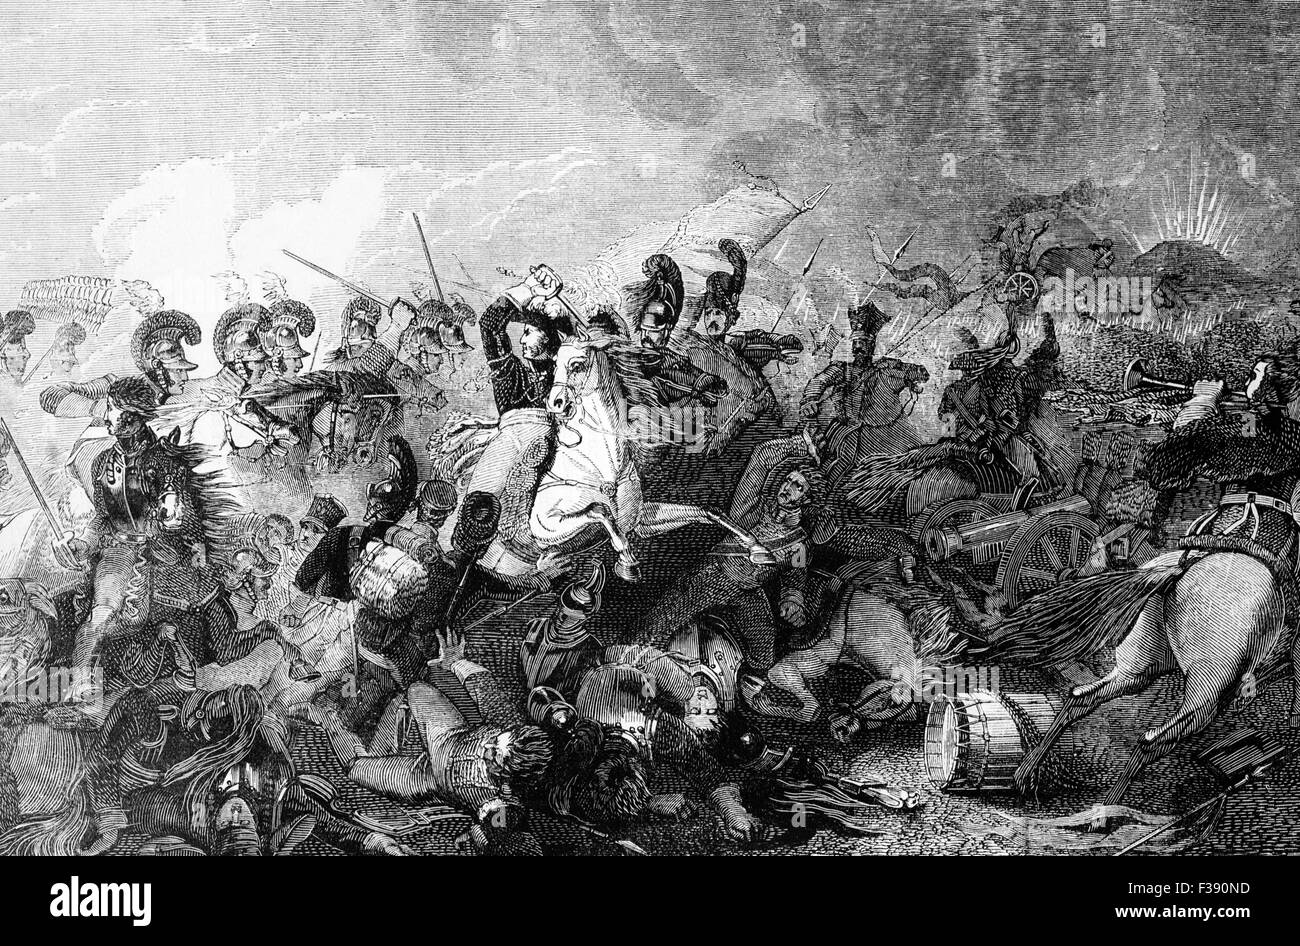 The charge of Lord Somerset's Heavy Brigade during the Battle of Waterloo that led to the rout of the French - Stock Image